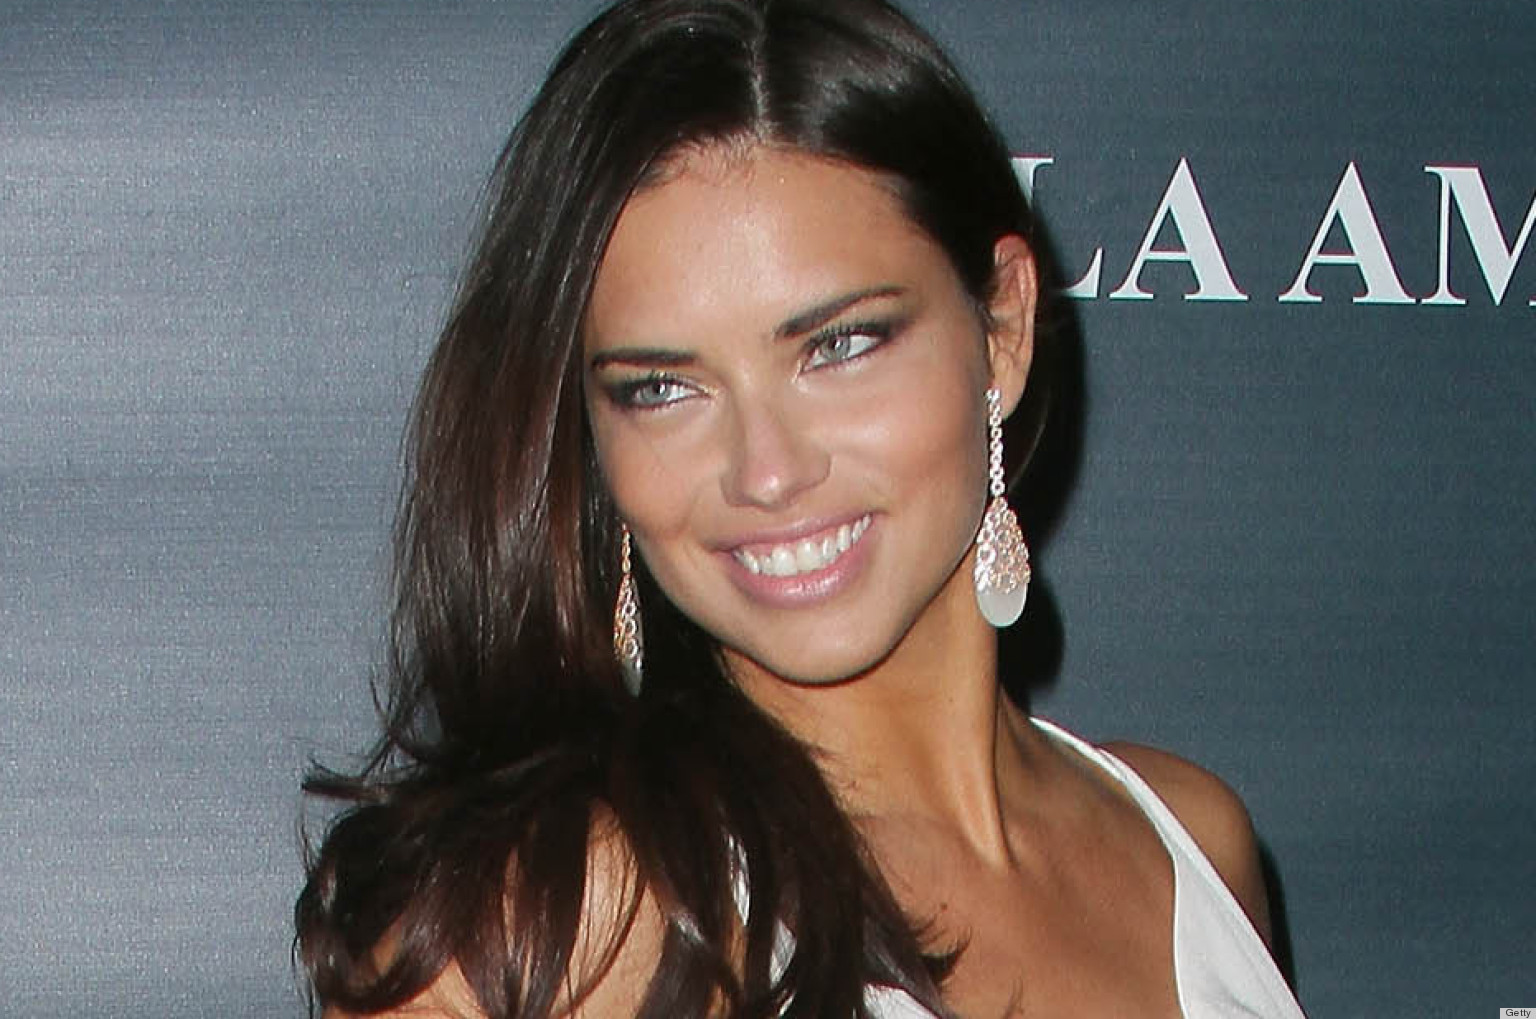 Adriana Lima earned a 2 million dollar salary, leaving the net worth at 60 million in 2017